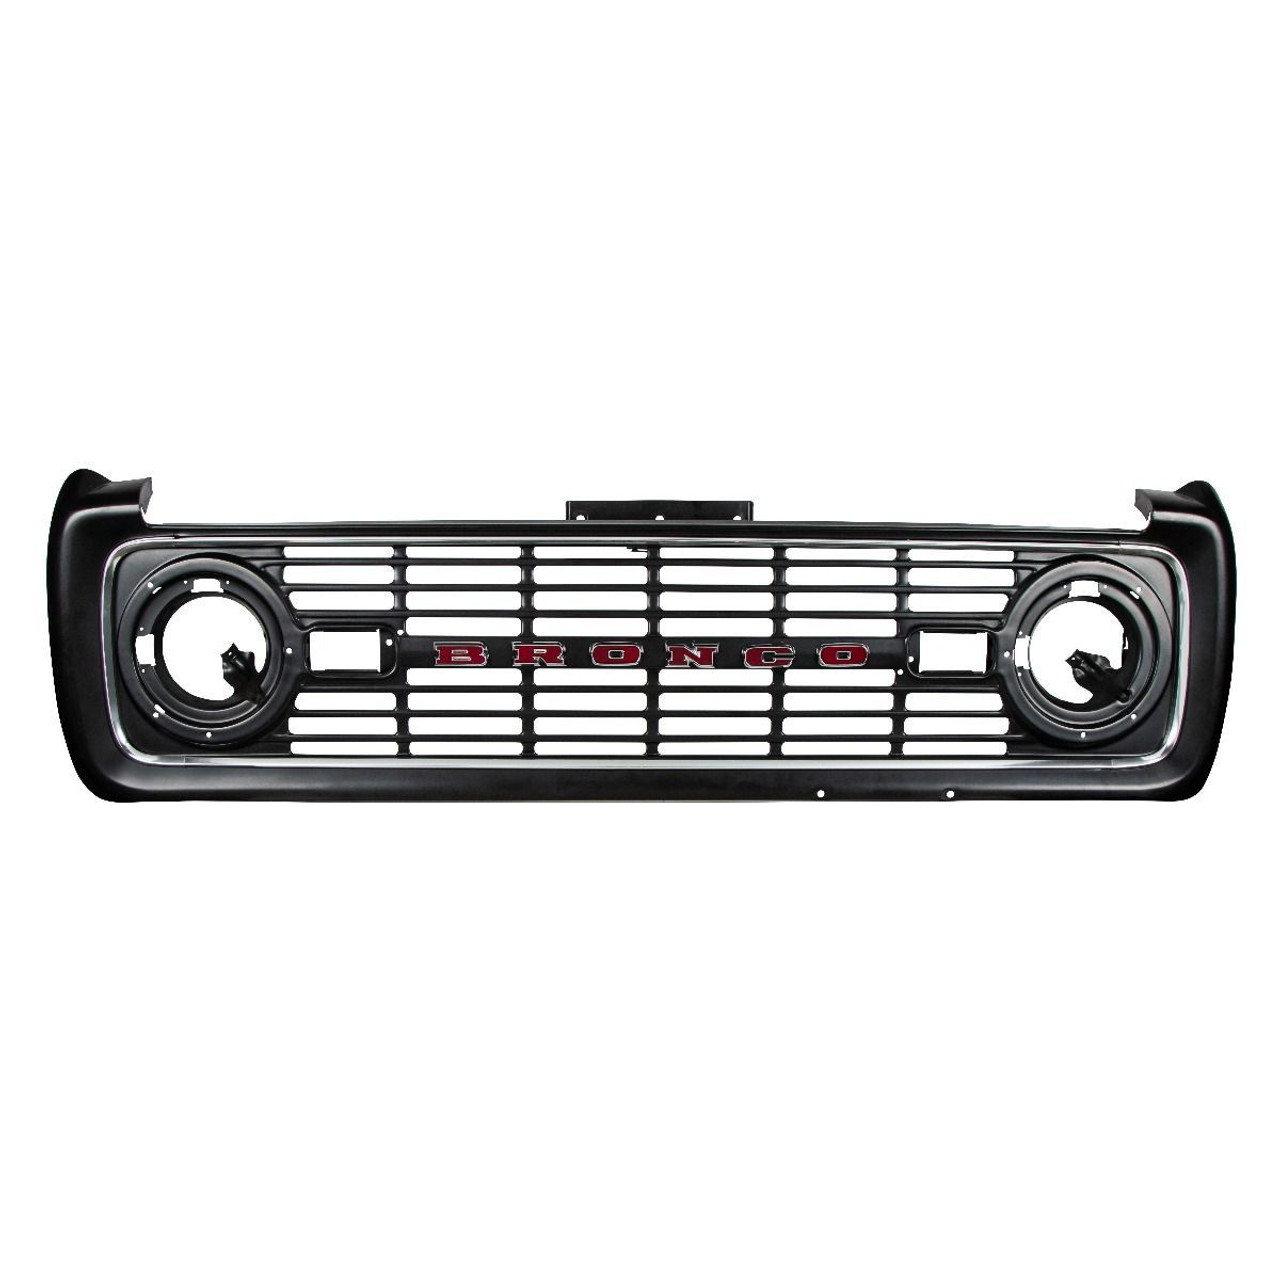 """Chrome """"BRONCO"""" Grille Letter Set, Compatible with Ford Bronco 1966-1977"""